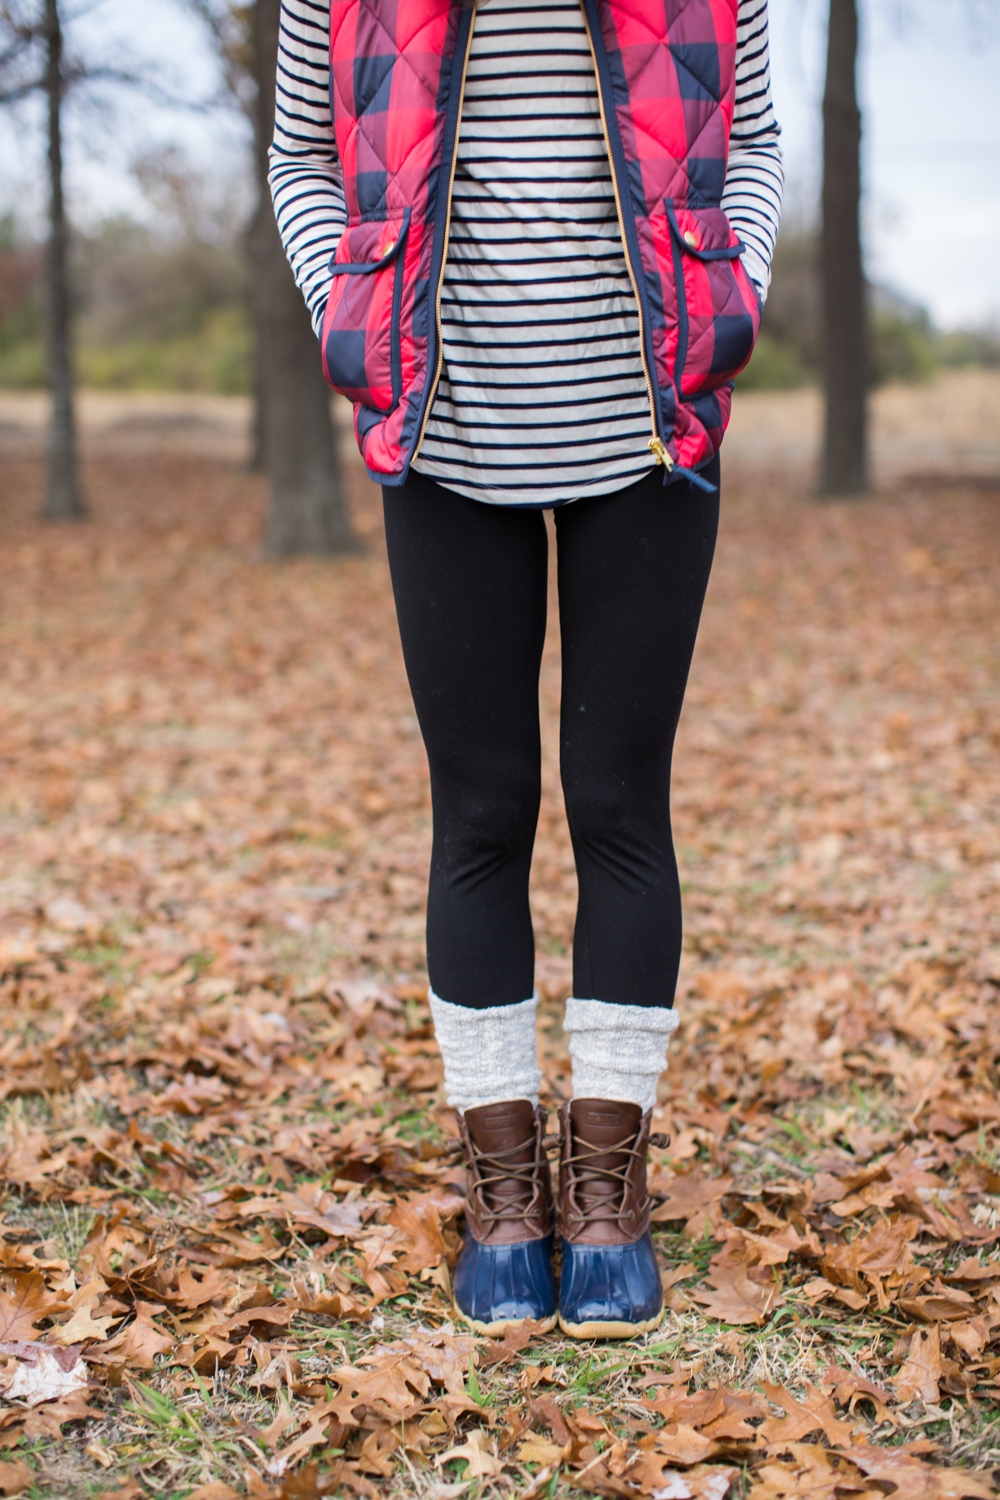 What To Wear With Leggings 7 Style Tips Aol Lifestyle